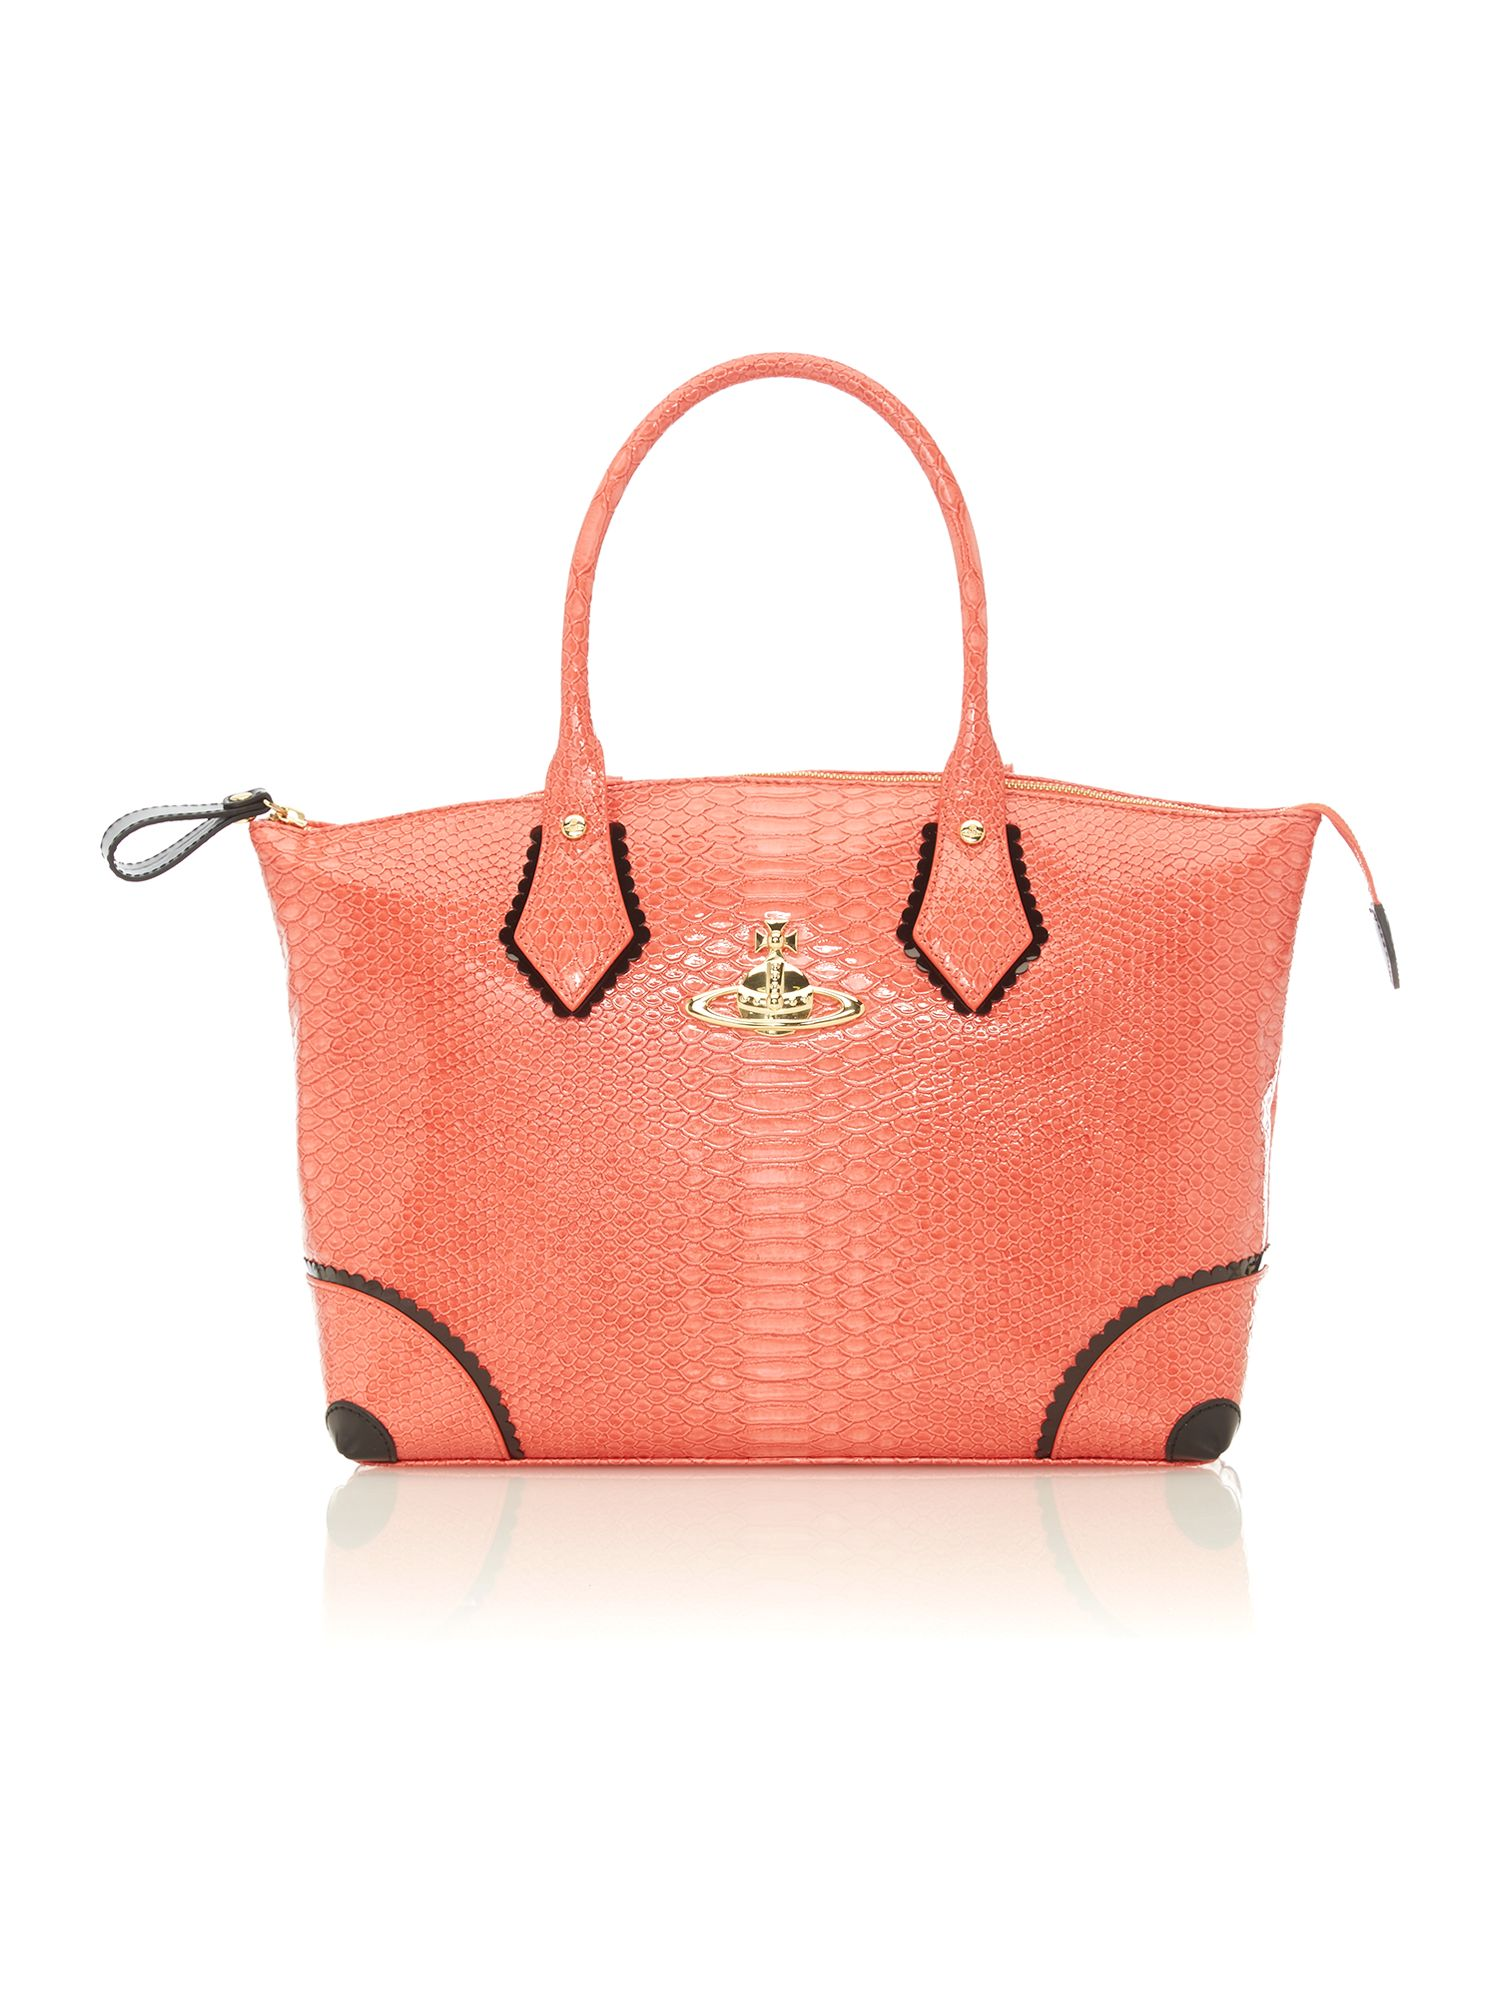 Frilly Snake large pink tote bag